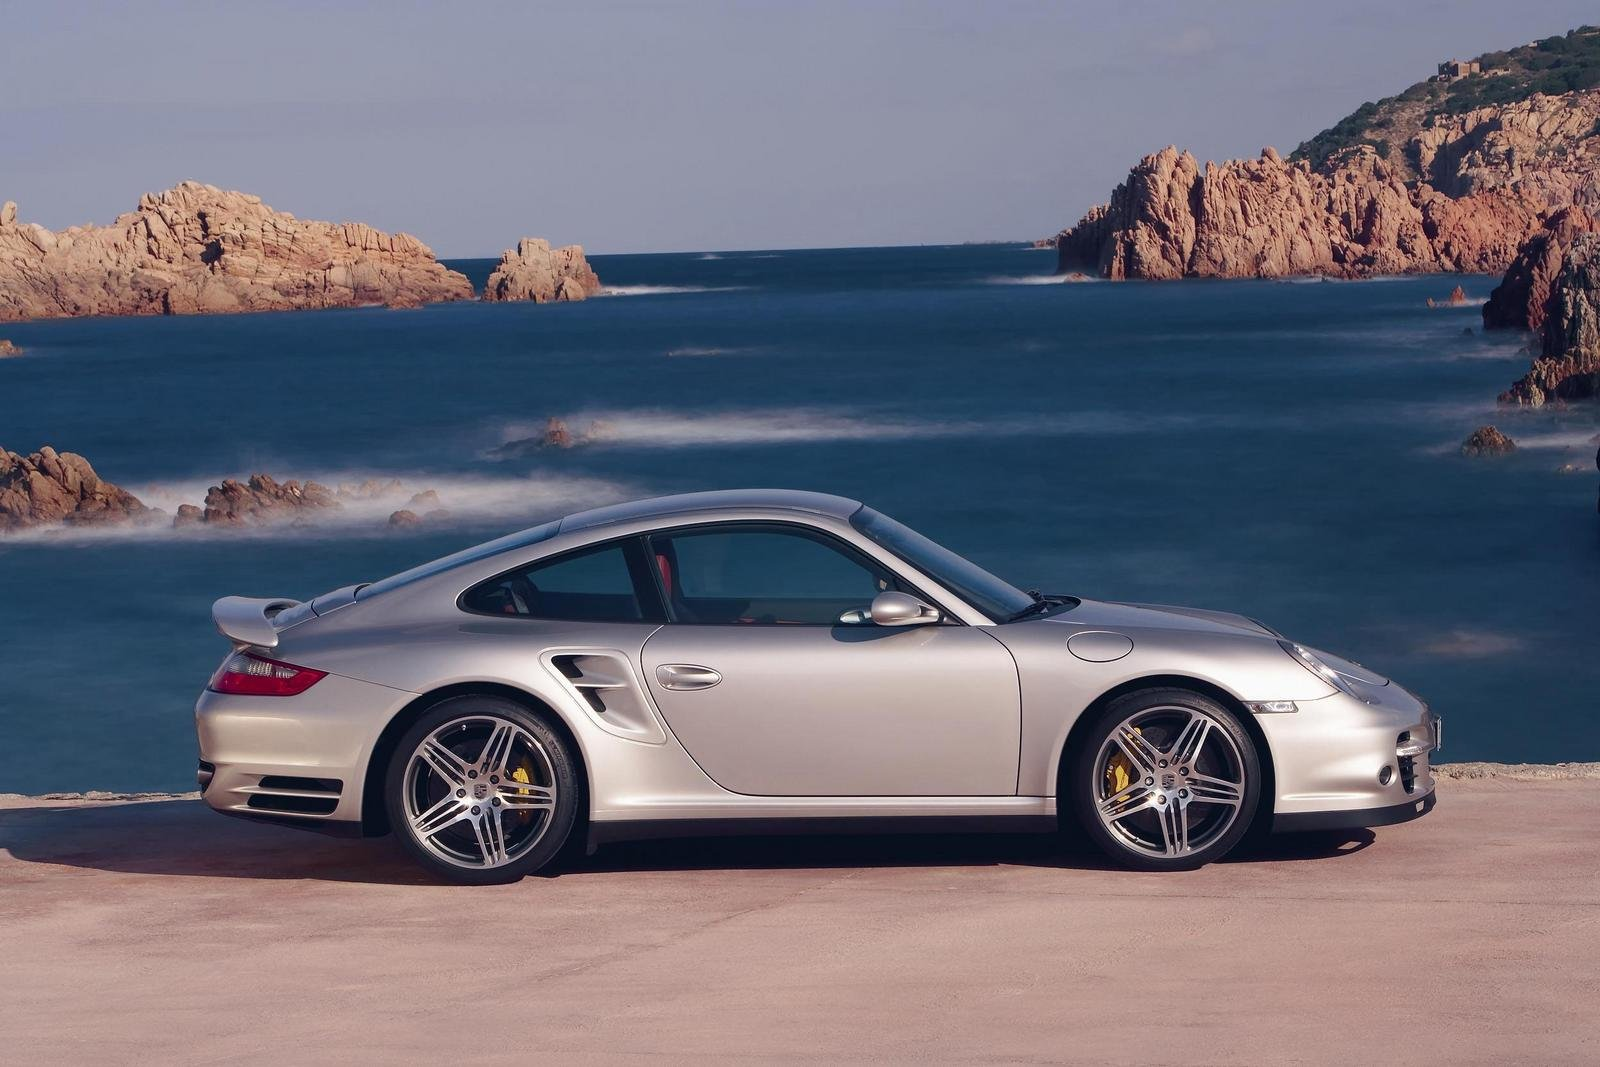 2007 porsche 911 turbo 997 picture 54751 car review top speed. Black Bedroom Furniture Sets. Home Design Ideas